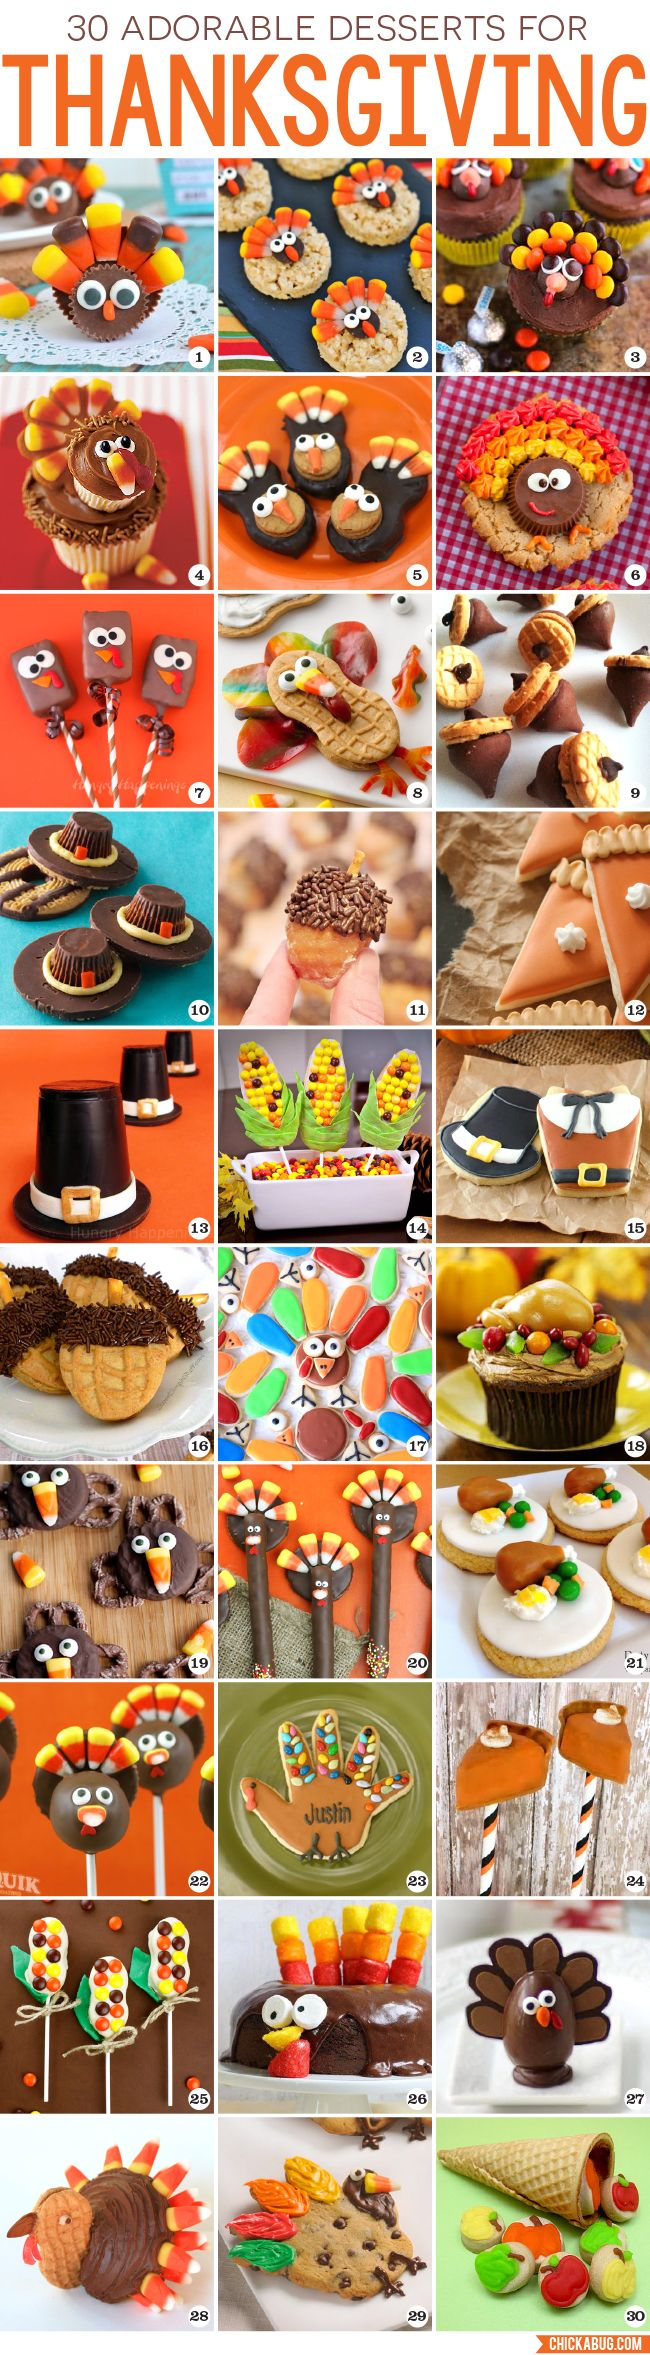 Looking for cute, fun, and easy Thanksgiving desserts? Here are 30 fabulous Thanksgiving dessert recipes! From turkeys to corn, from pilgrim hats to pumpkin pie, there's sure to be something here that fits the bill! #thanksgiving #dessert #recipes